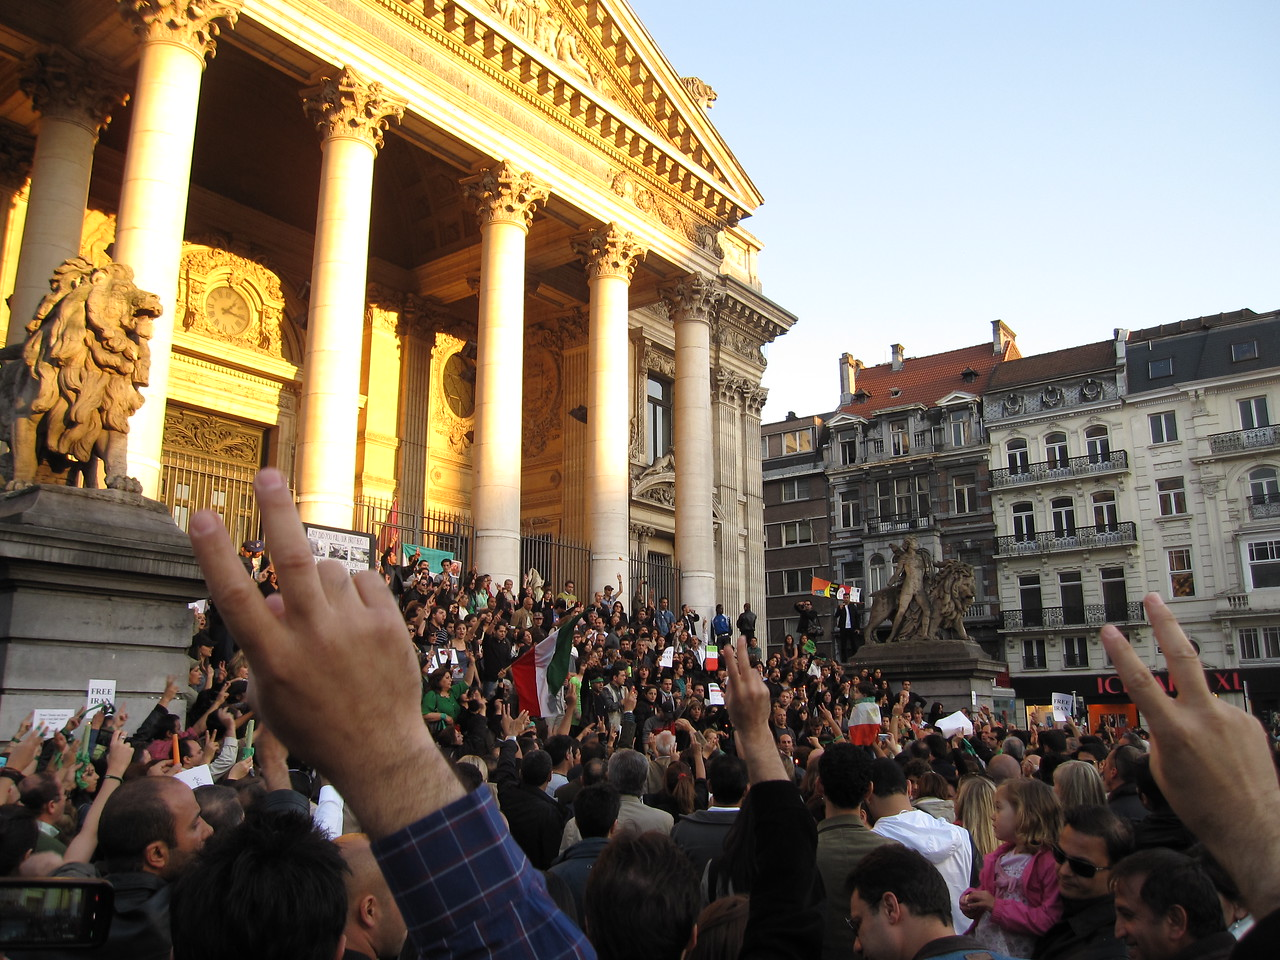 Ongoing protest in Brussels, Belgium